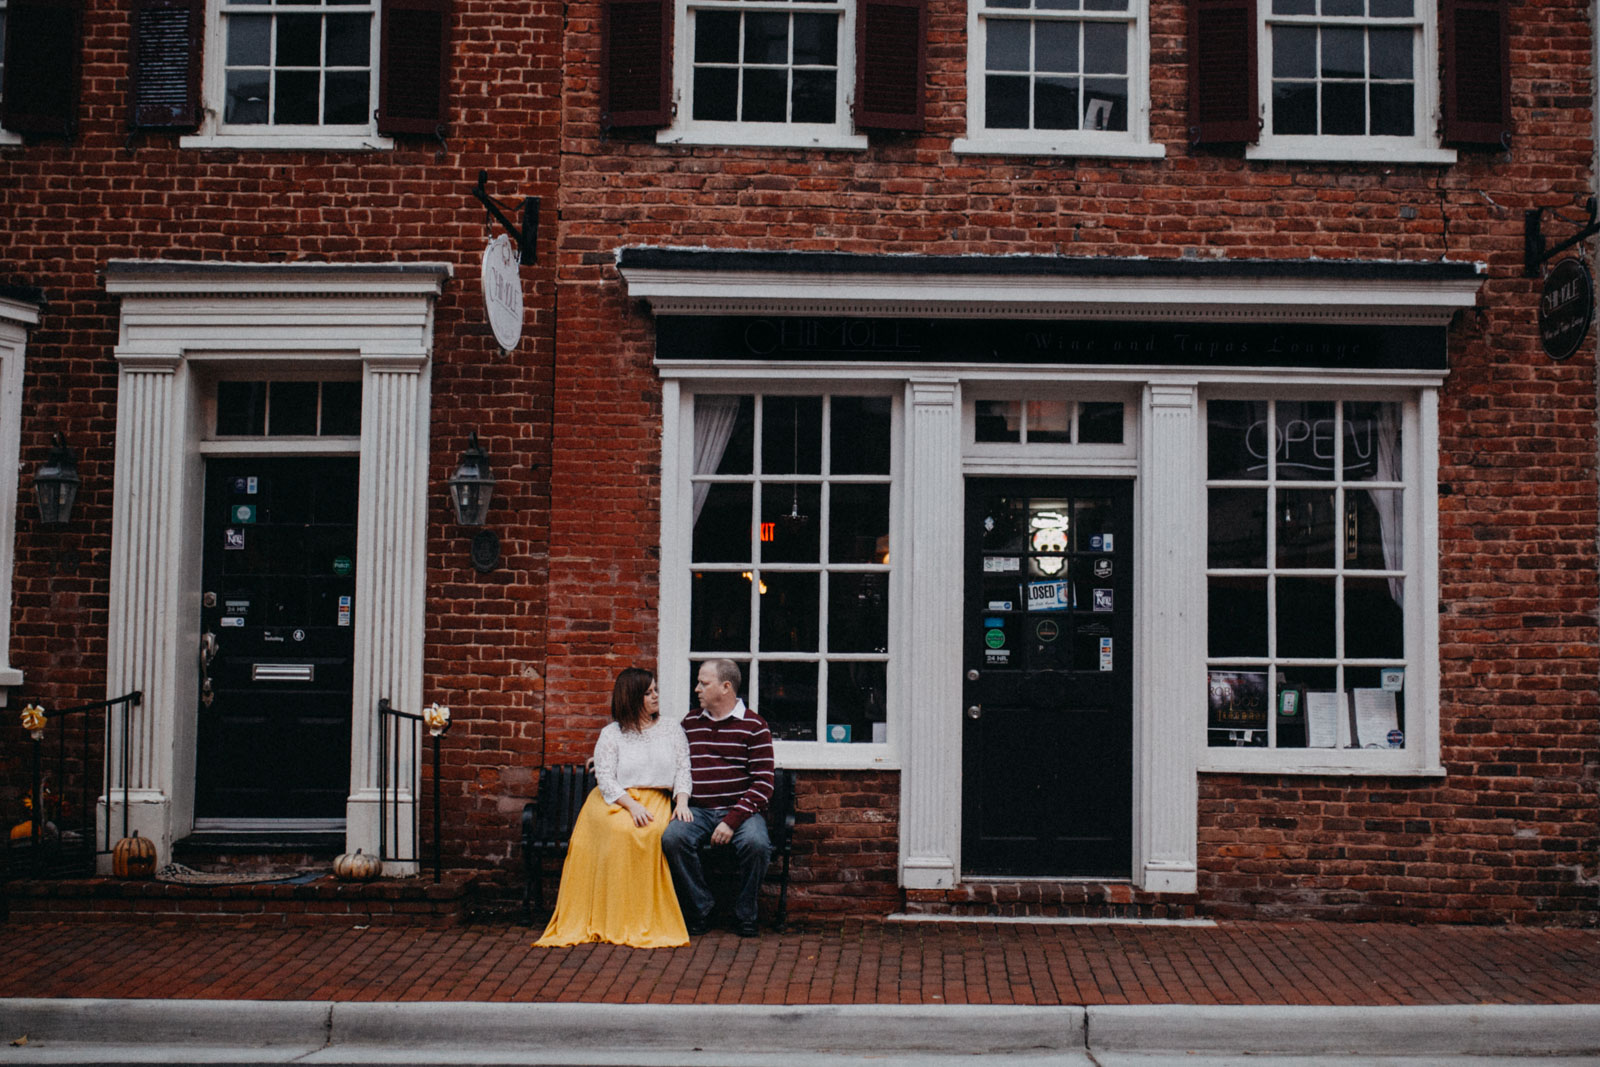 Couple sits on a bench in front of a brick building in  Downtown Leesburg Virigina